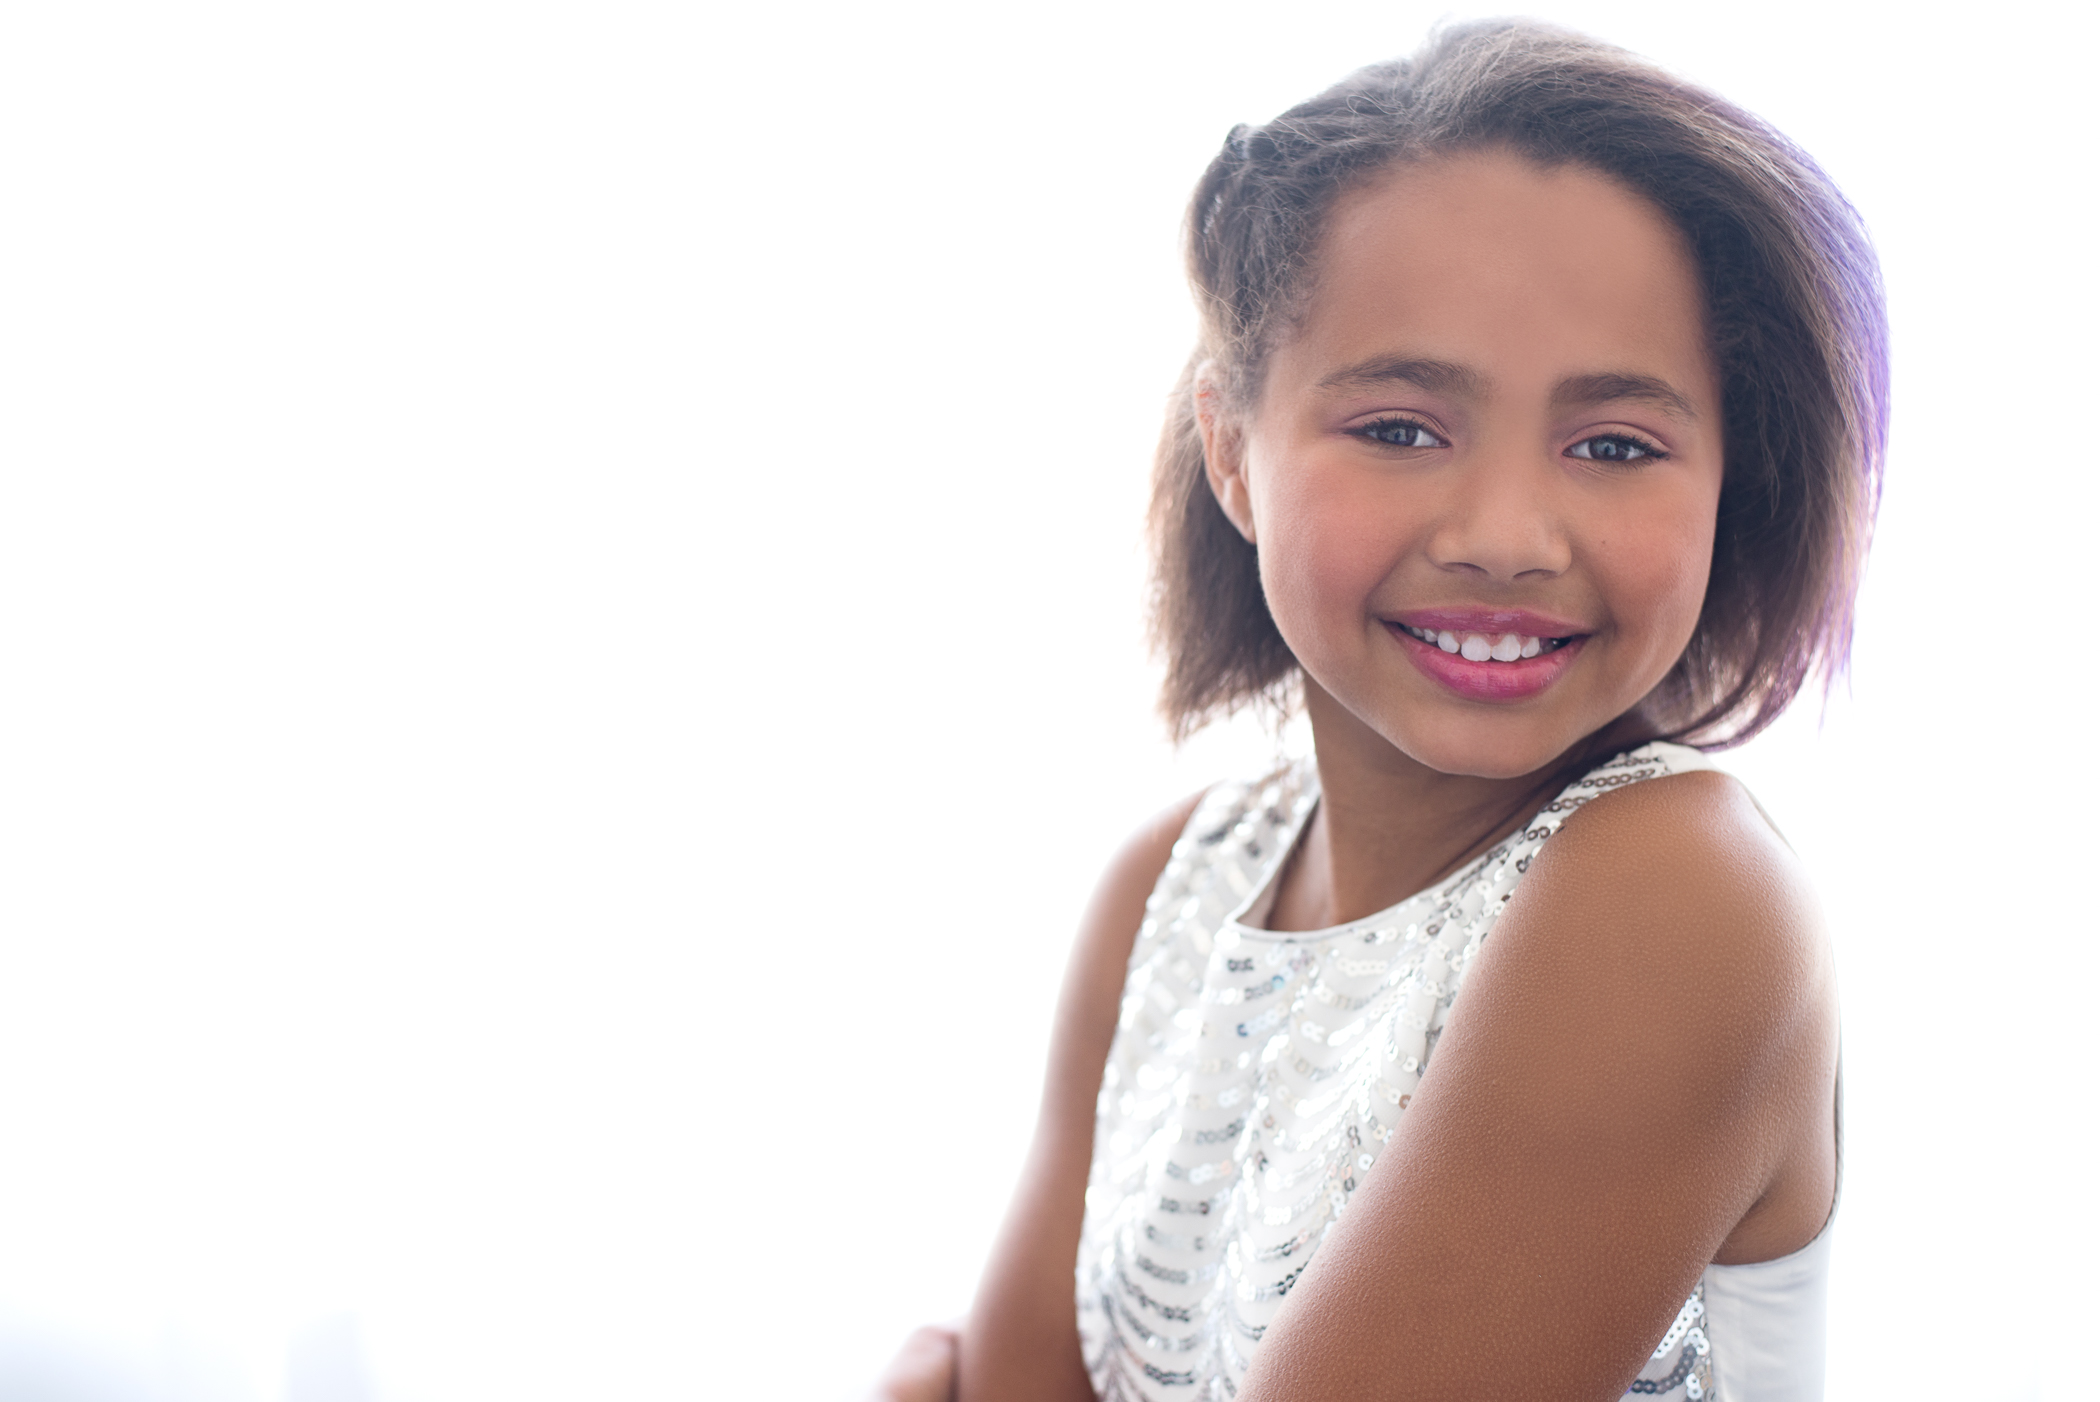 From April, the gorgeous Lehana who celebrated her 10th birthday at the studio!